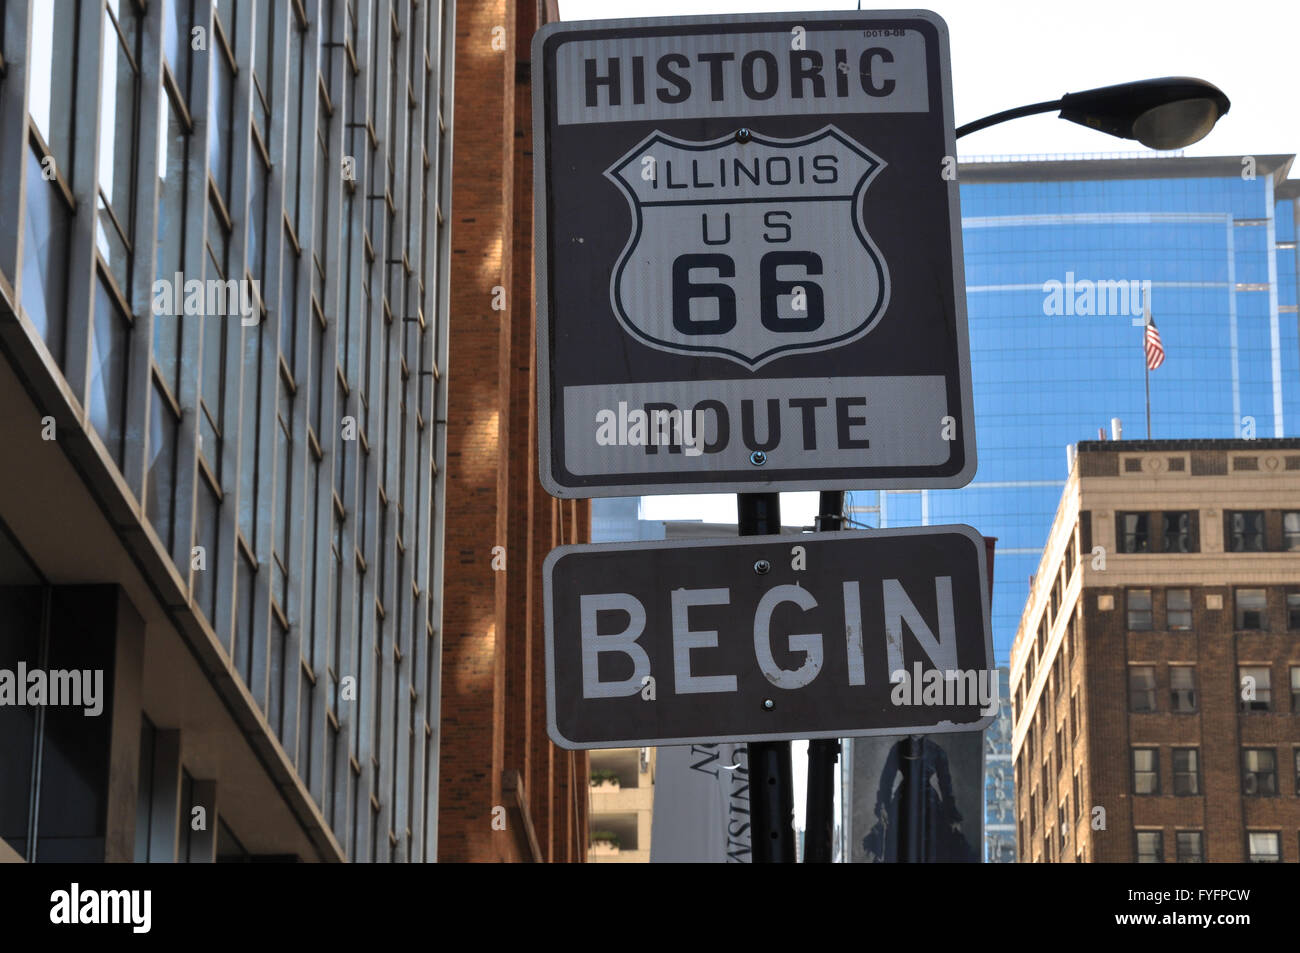 begin route 66 sign, chicago stock photo: 102994441 - alamy